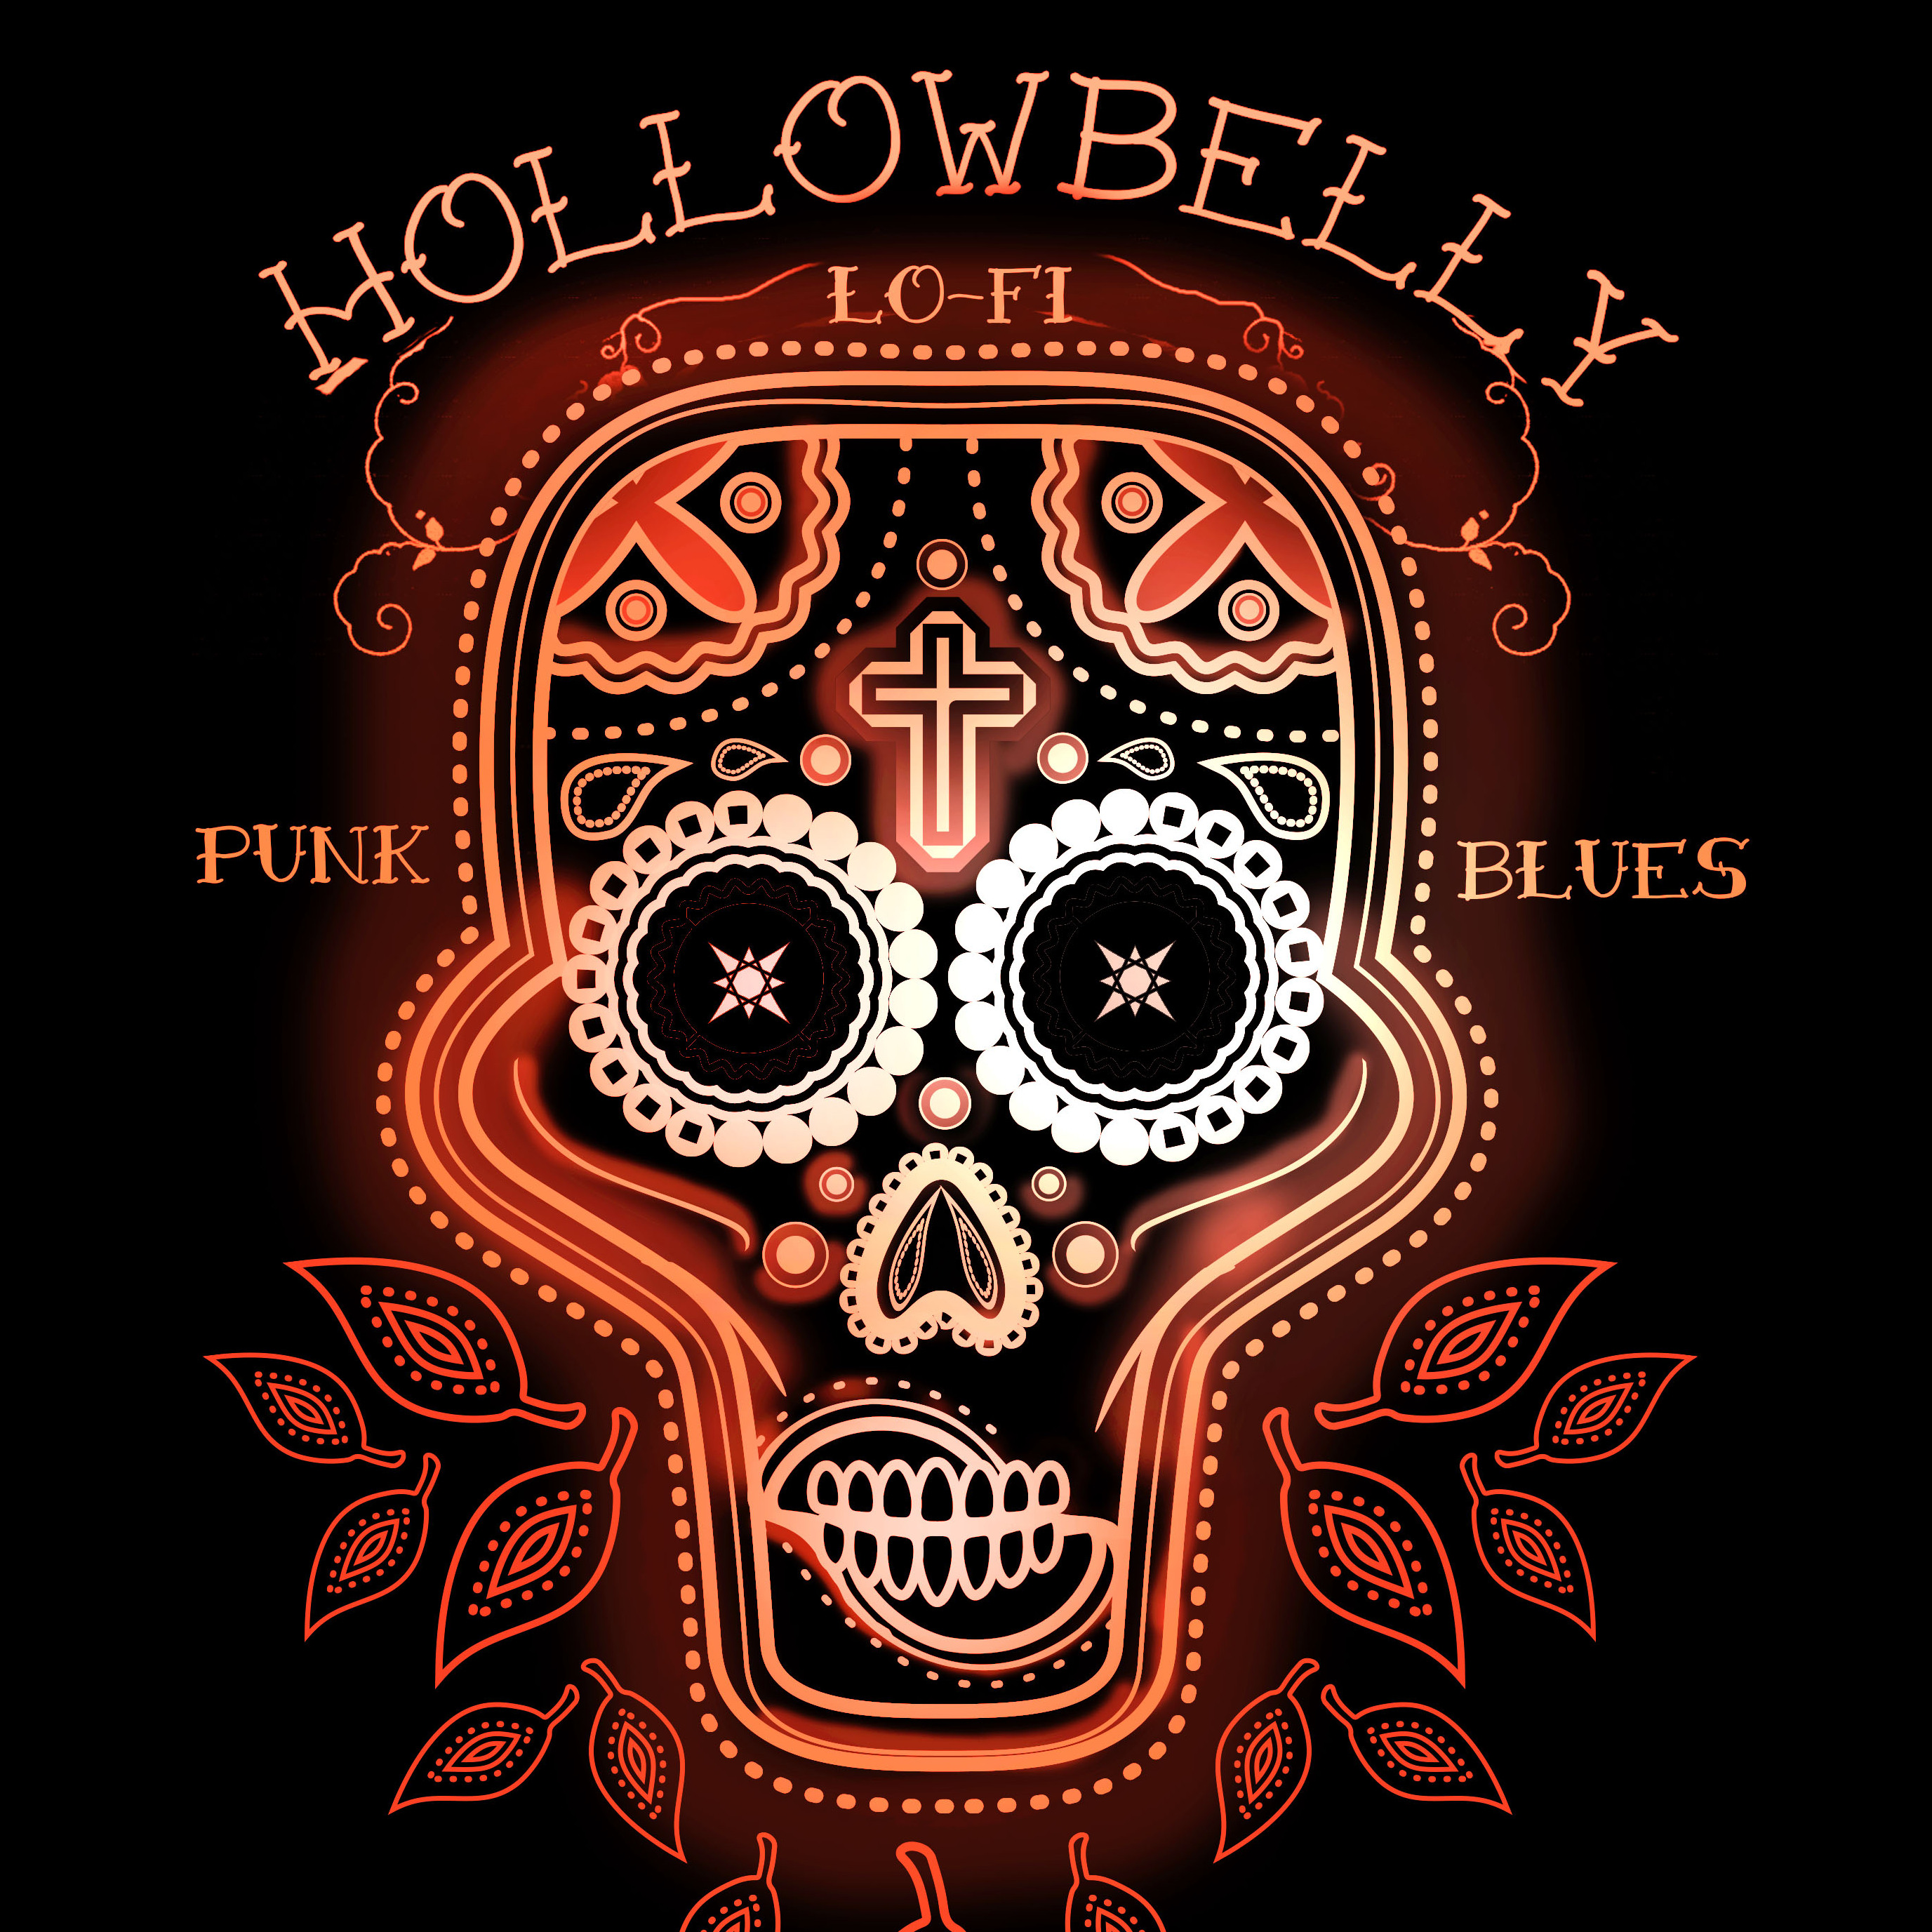 HOLLOWBELLY